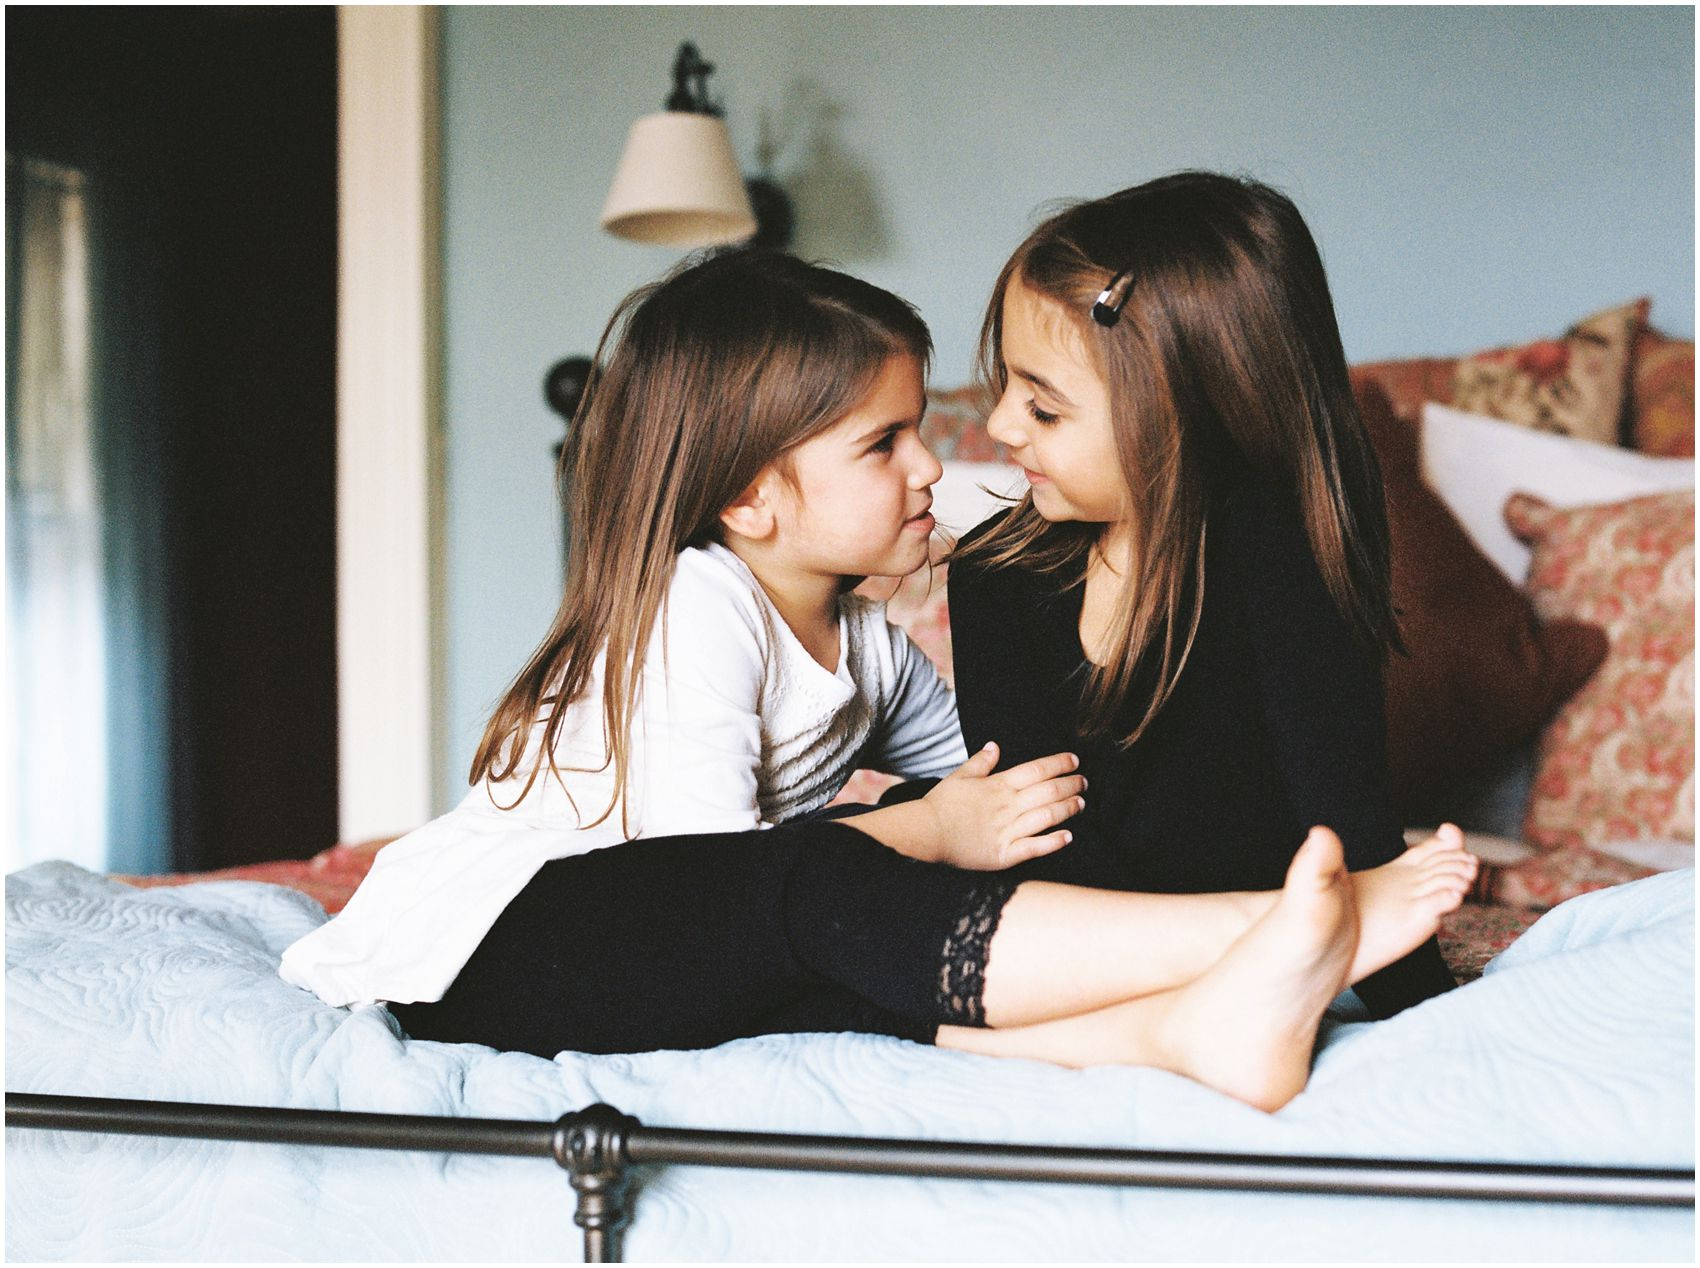 Family Photographer Miriam Dubinsky captures a loving bond between two sisters at home of Bergen County, NJ